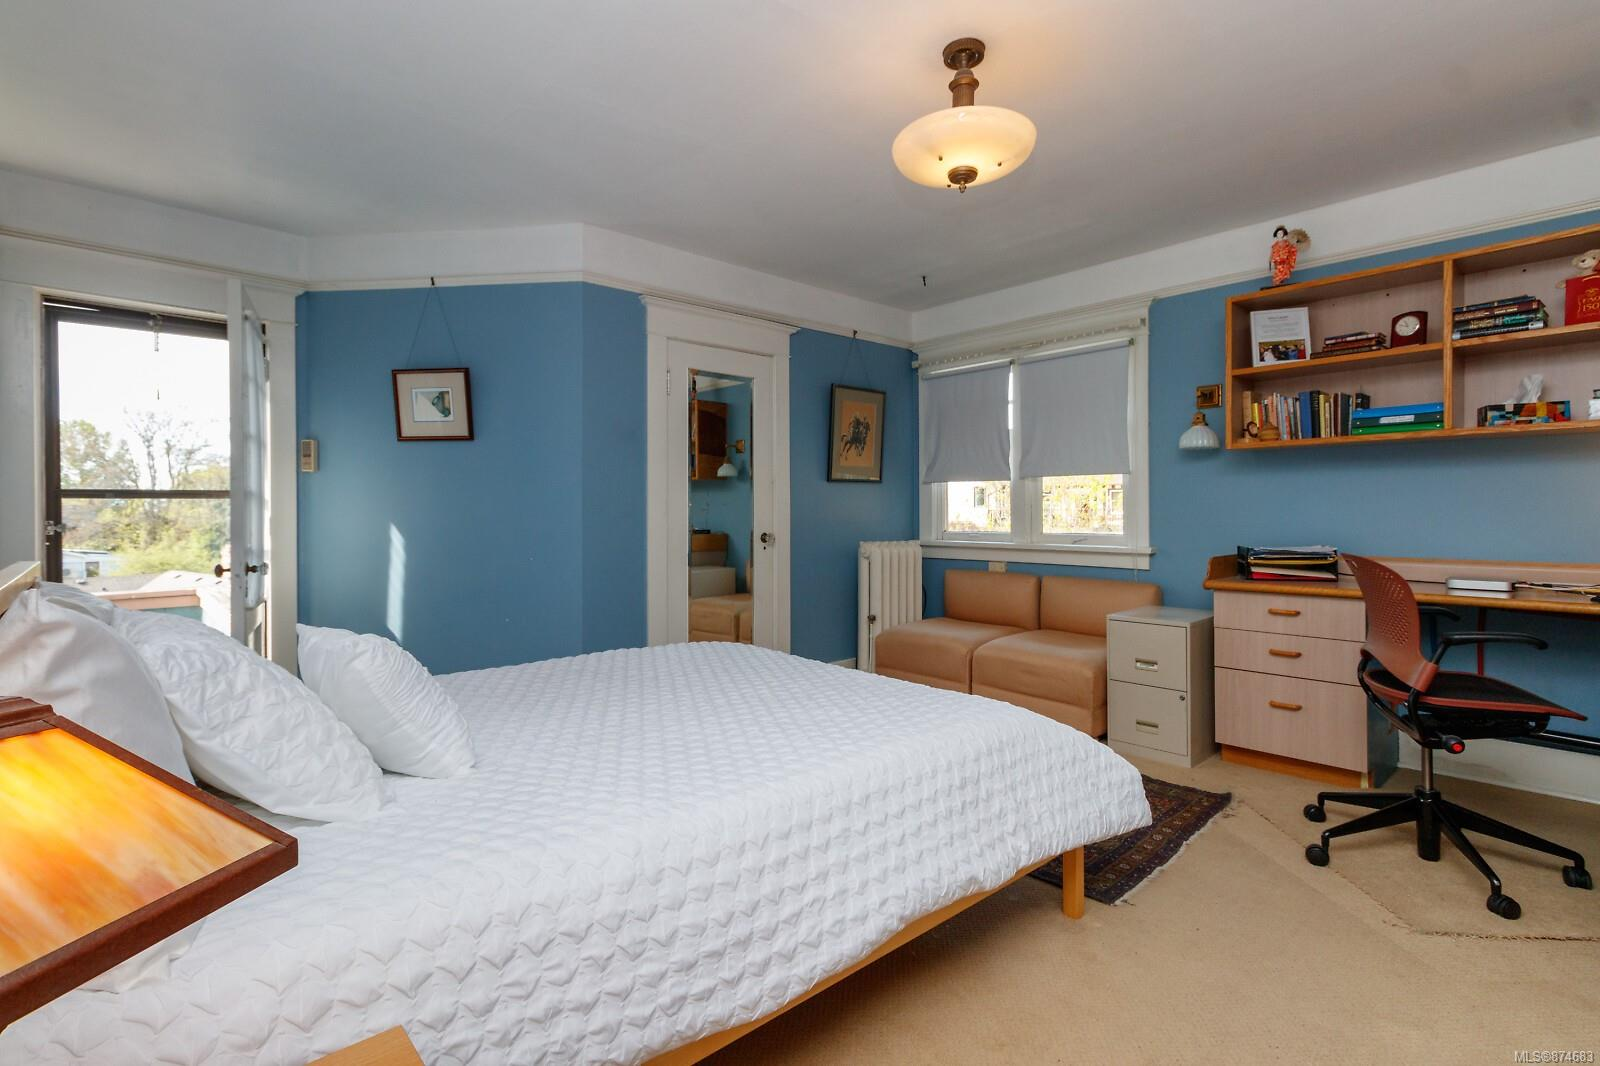 Photo 25 at 3 - 830 St. Charles Street, Rockland, Victoria